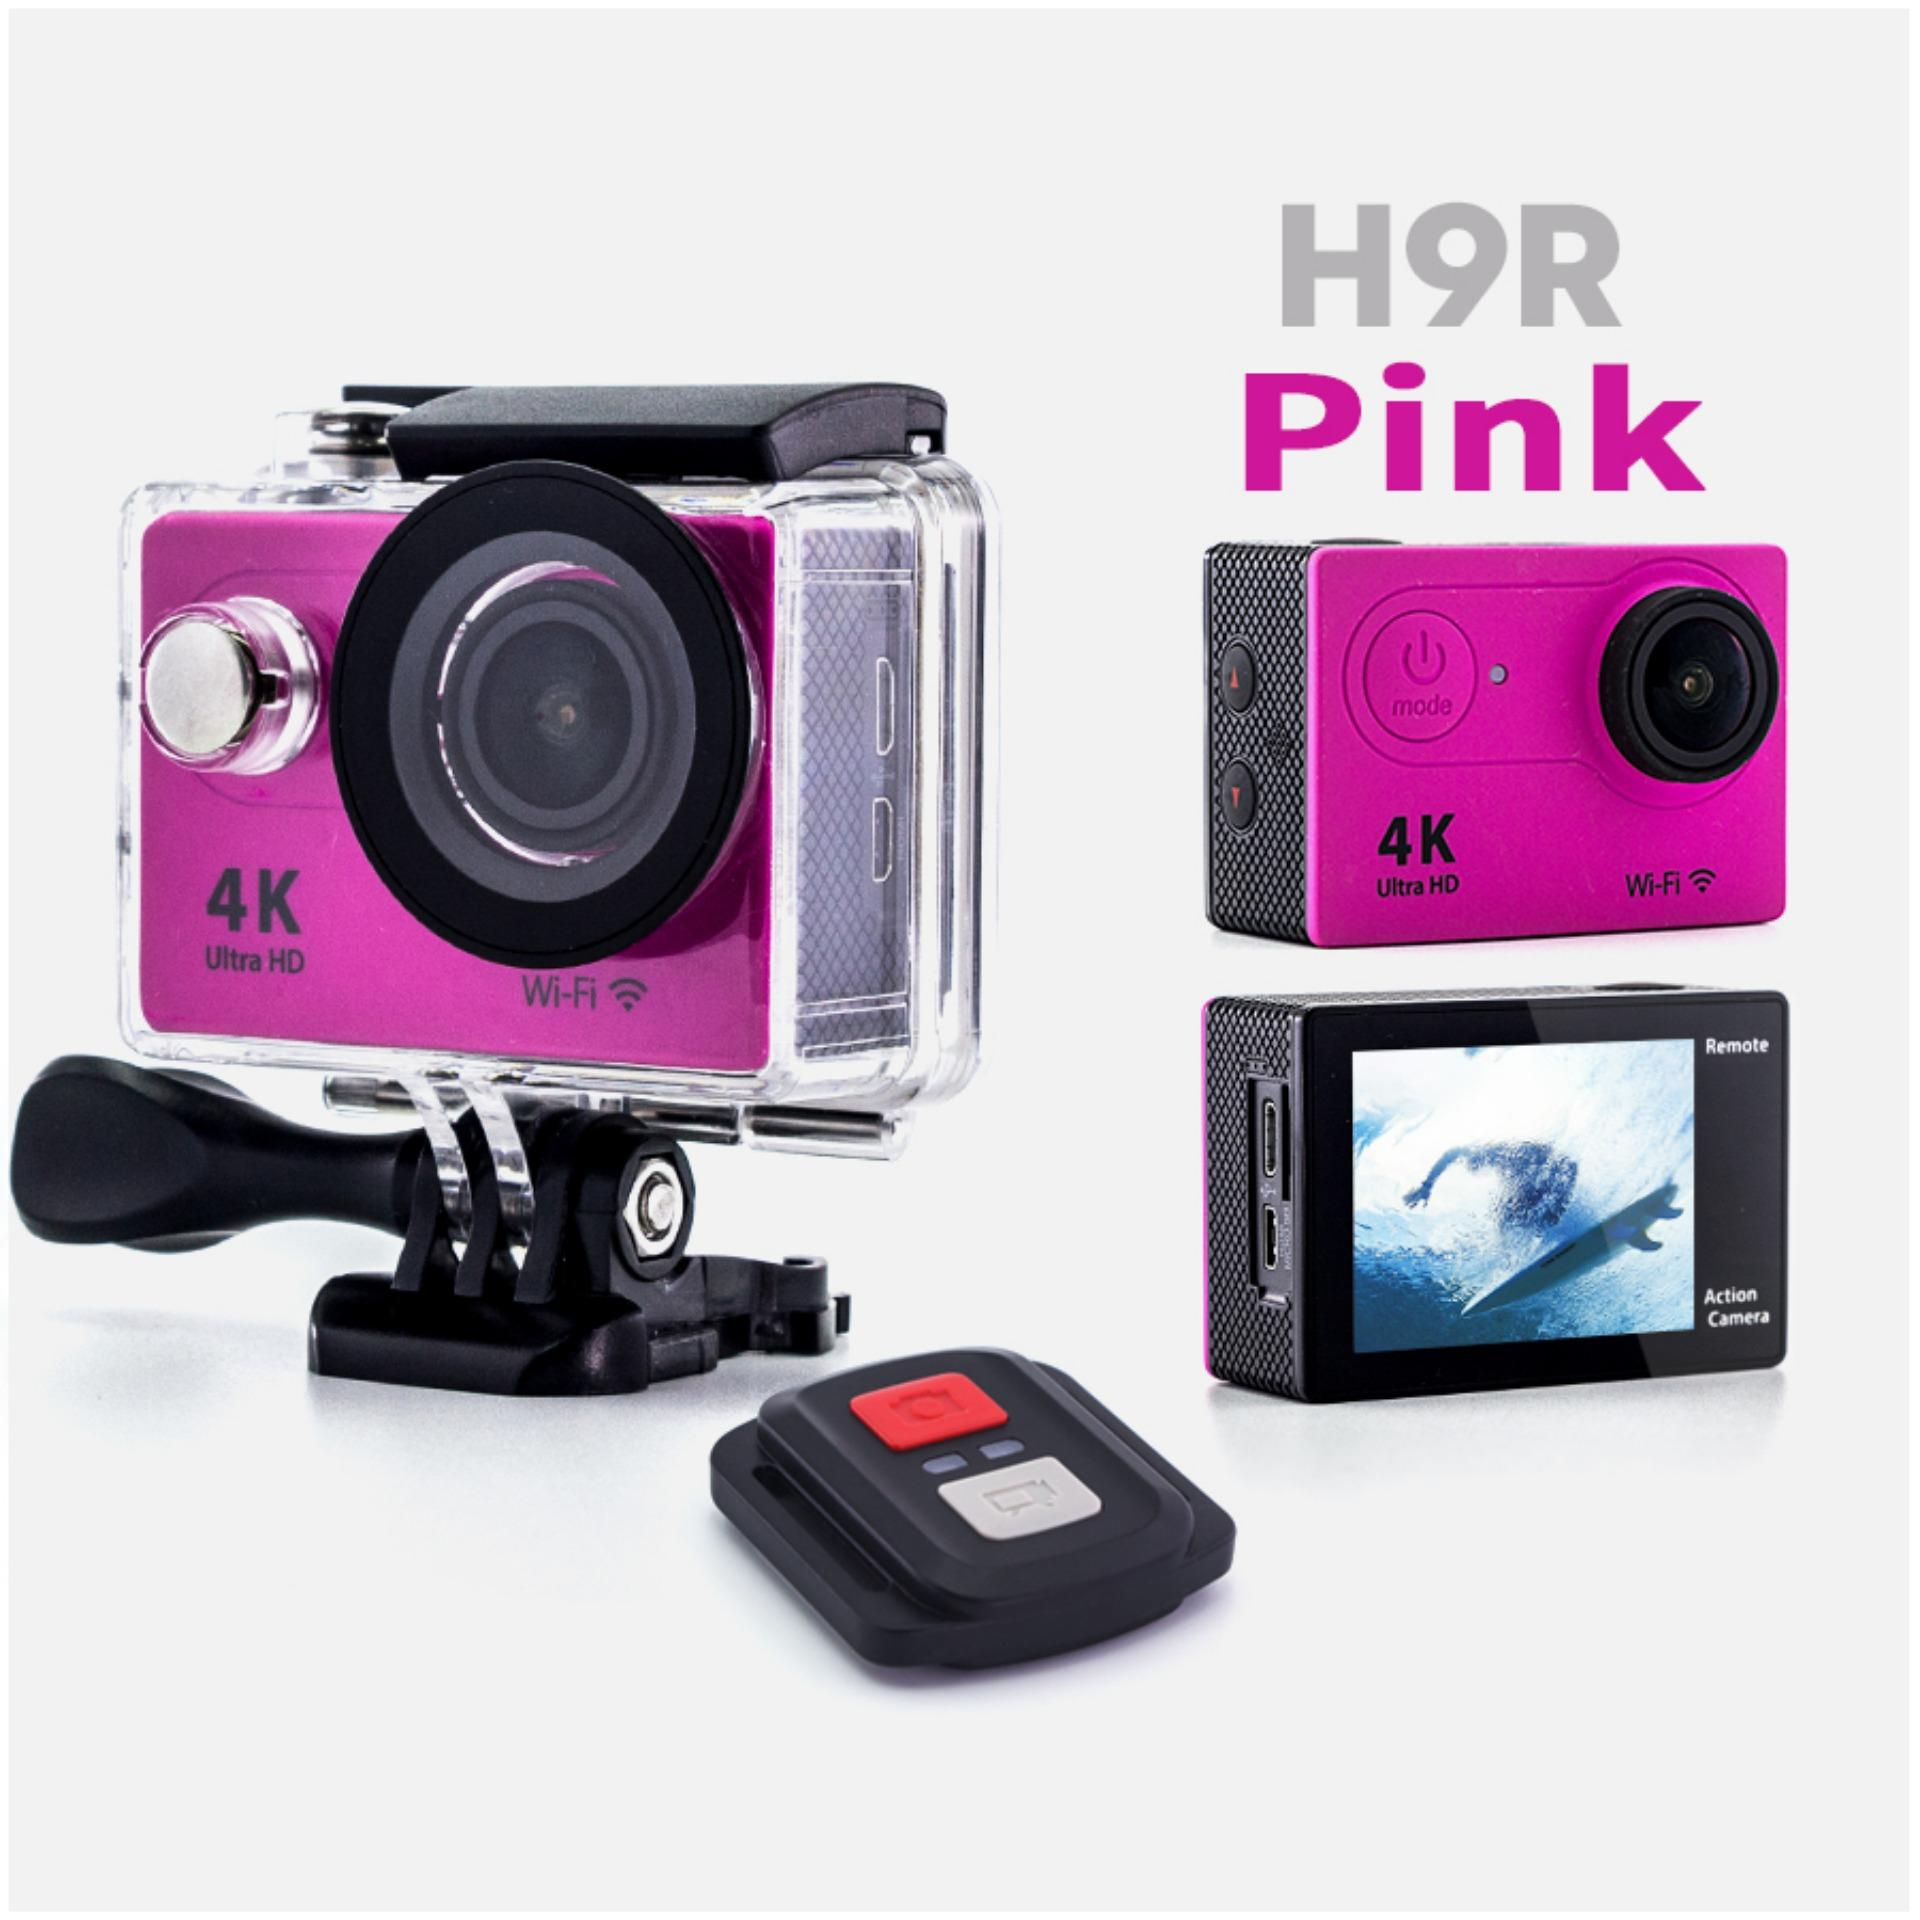 ... Attanta Smp 09a Phone Clip Sandisk 16gb Class 10 Kaos Brica Sticker Bpro5; Page - 3. YICOE H9R Kamera Aksi Ultra Full HD 12 MP HD 4 K 25fps 12 MP WiFi